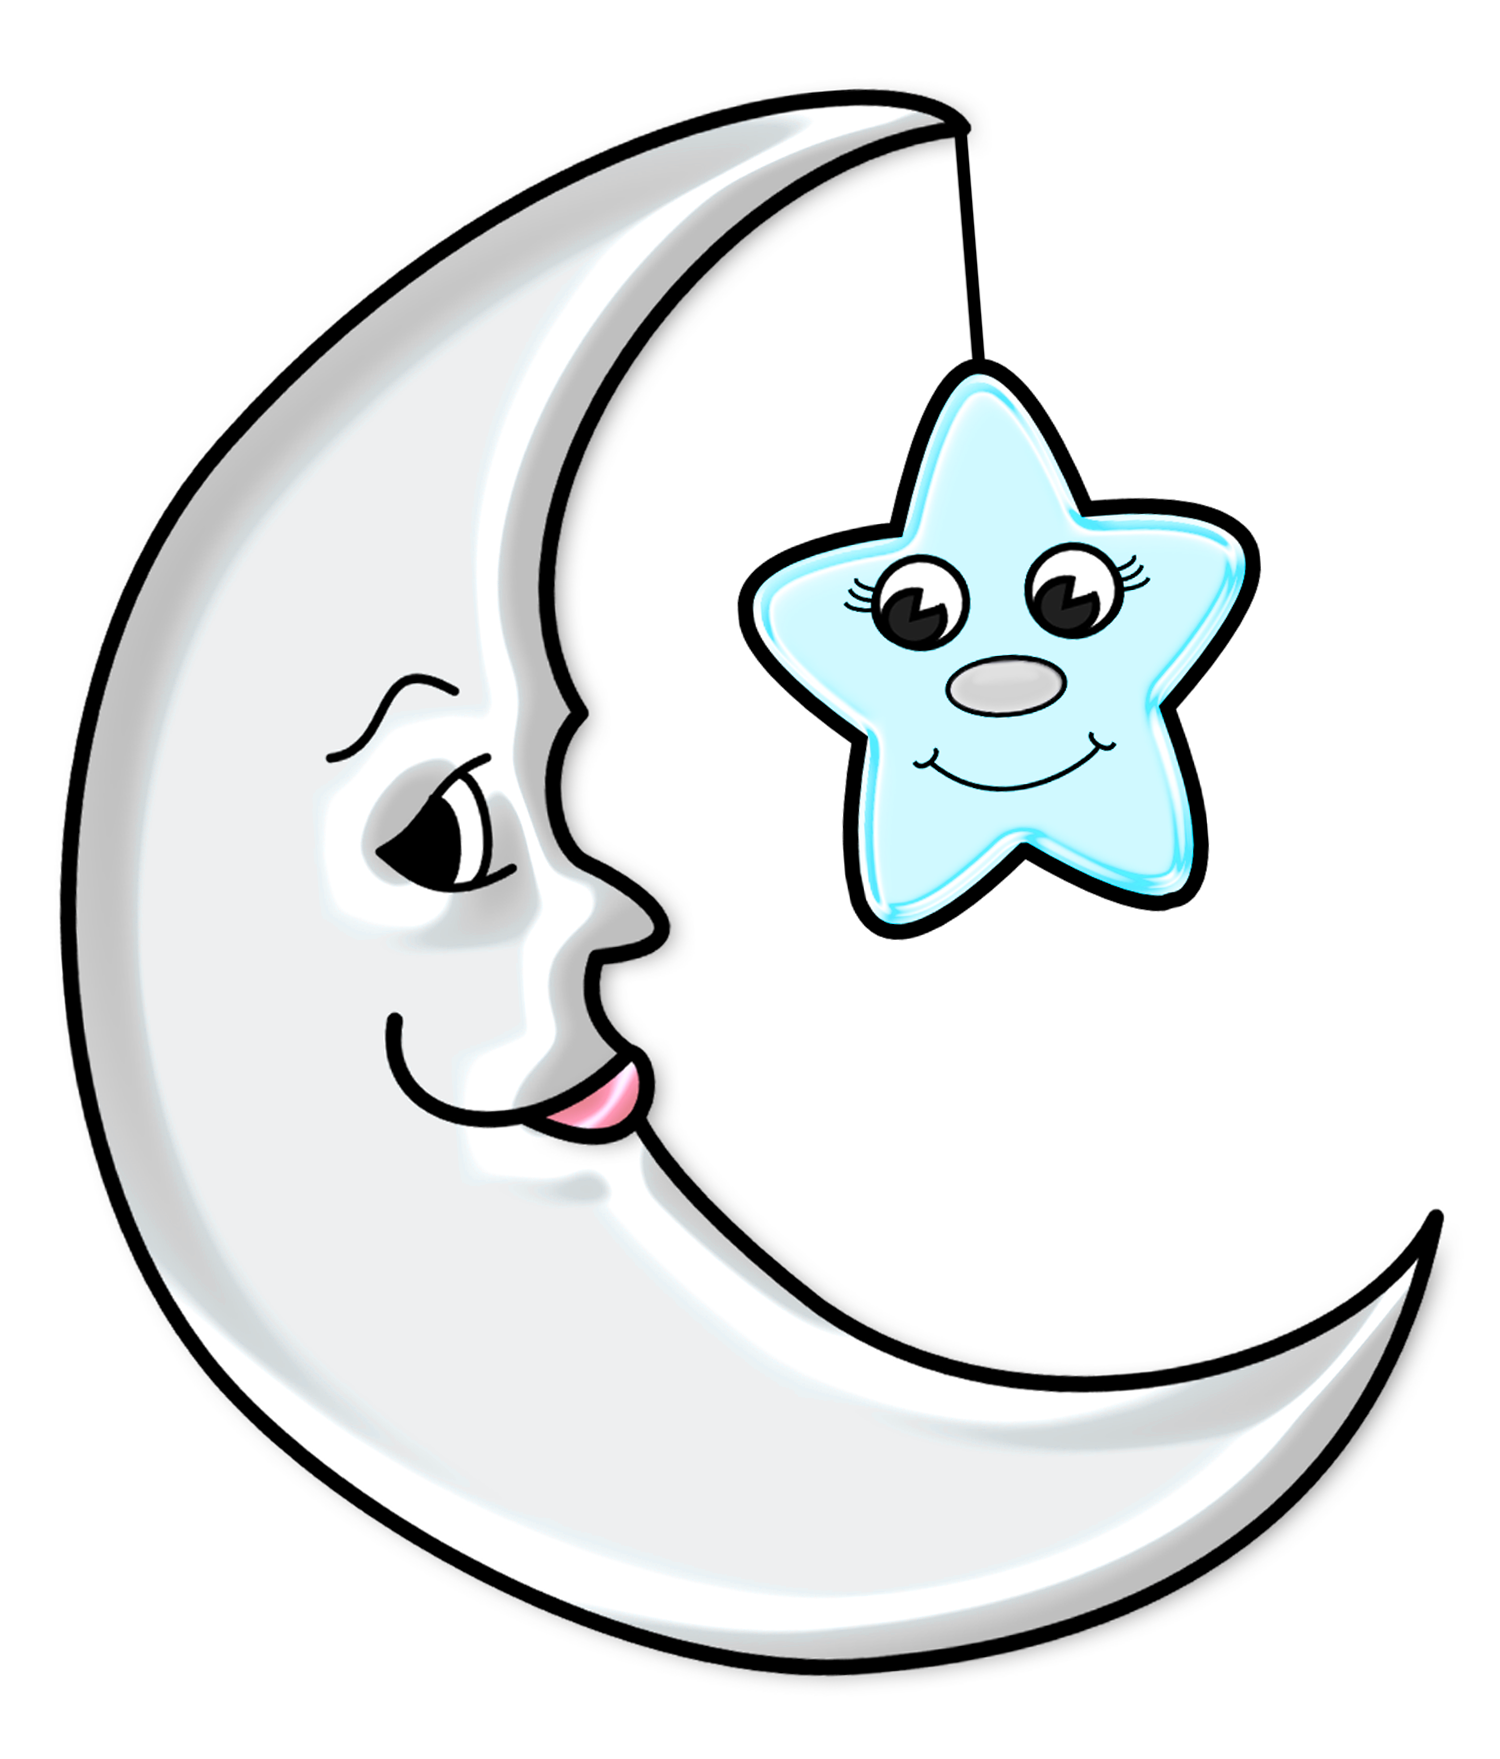 Earth moon sun clipart jpg stock 28+ Collection of Cute Moon Clipart | High quality, free cliparts ... jpg stock